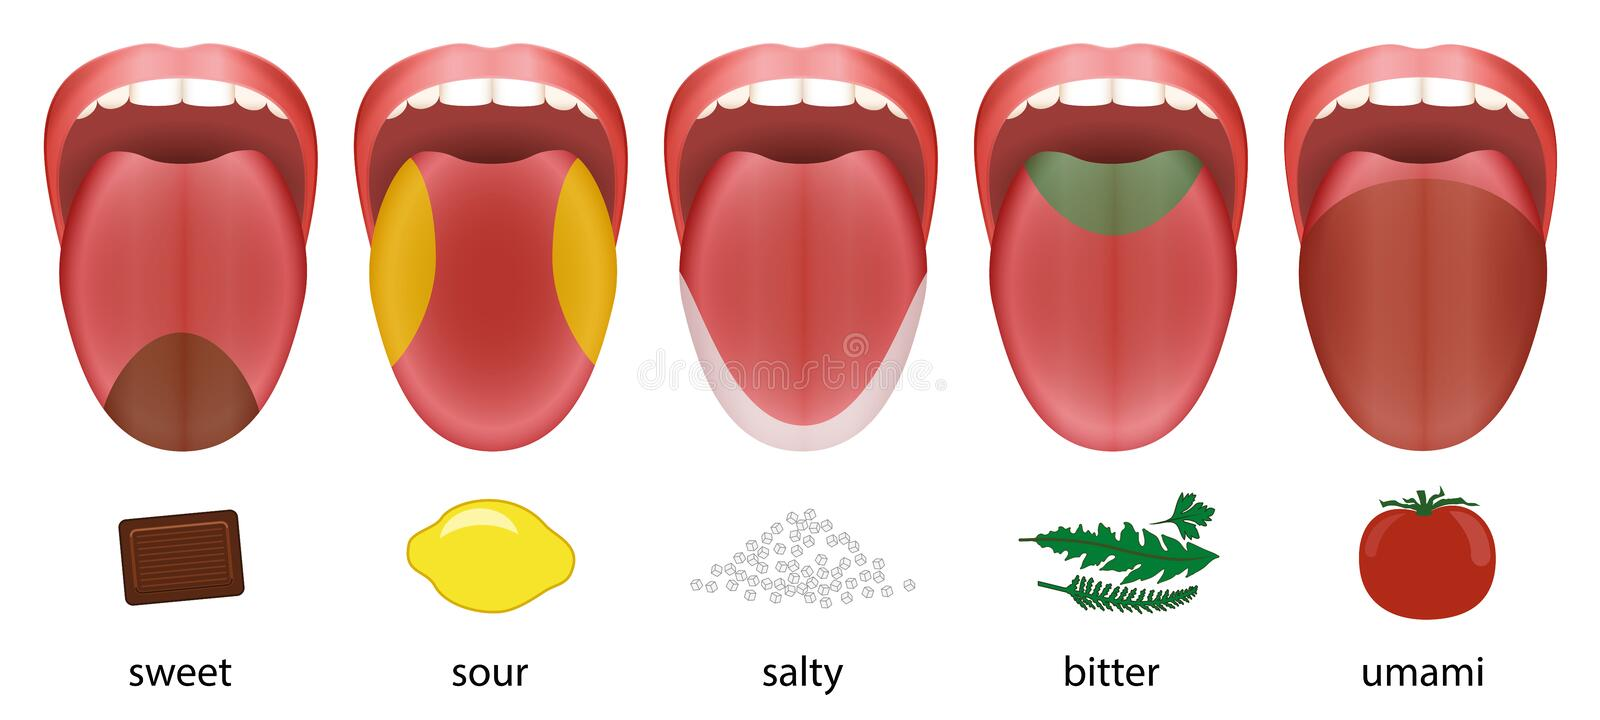 Tongue Taste Areas Sweet Sour Salty Bitter Umami. Tongue with five taste areas sweet, sour, salty, bitter and umami represented by chocolate, lemon, salt, herbs stock illustration